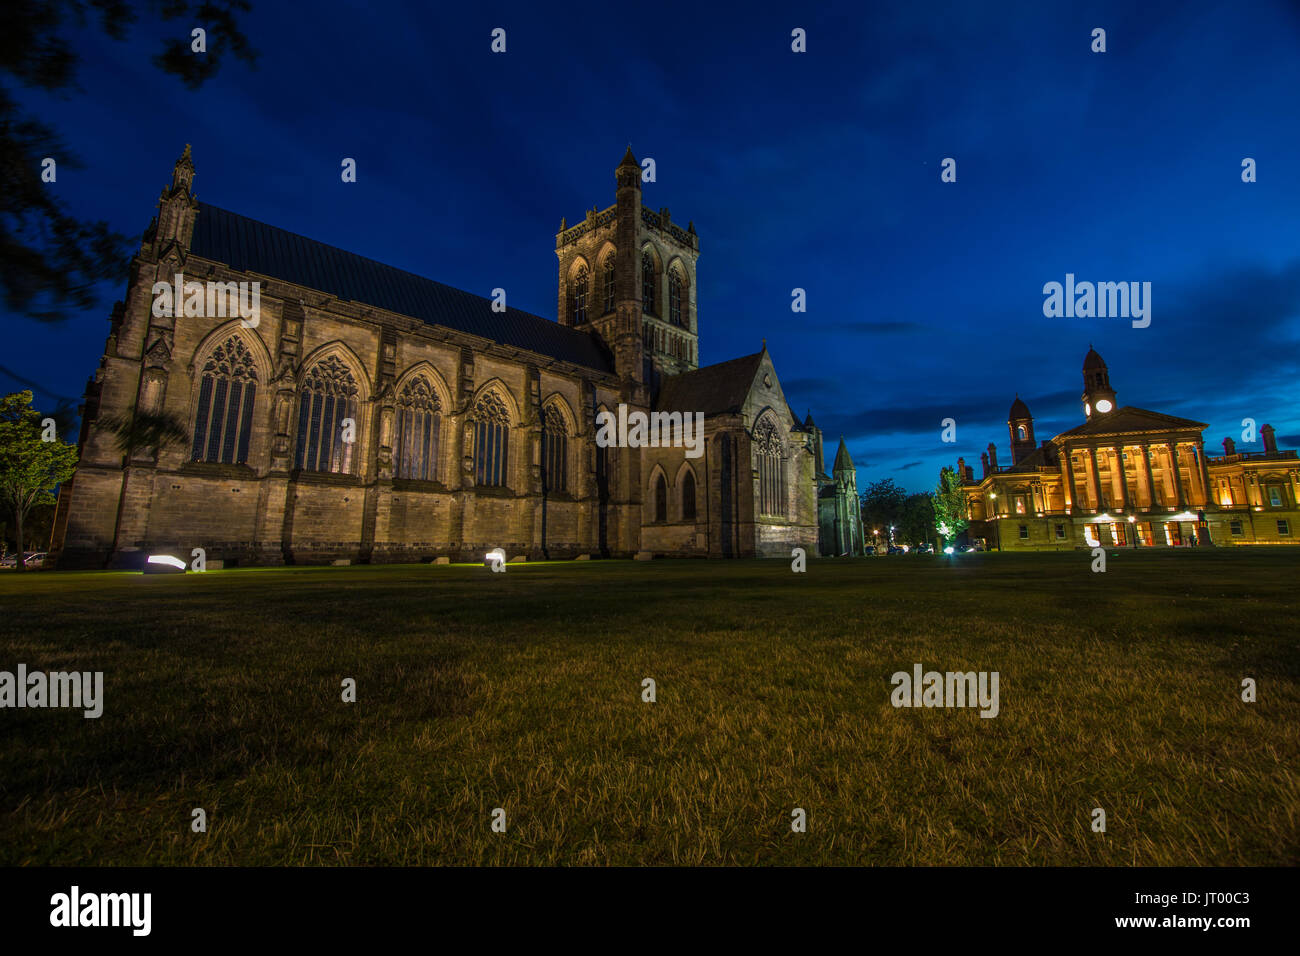 Paisleys 850 year old Abbey Taken At night With Clarkes Town Hall In Background - Stock Image